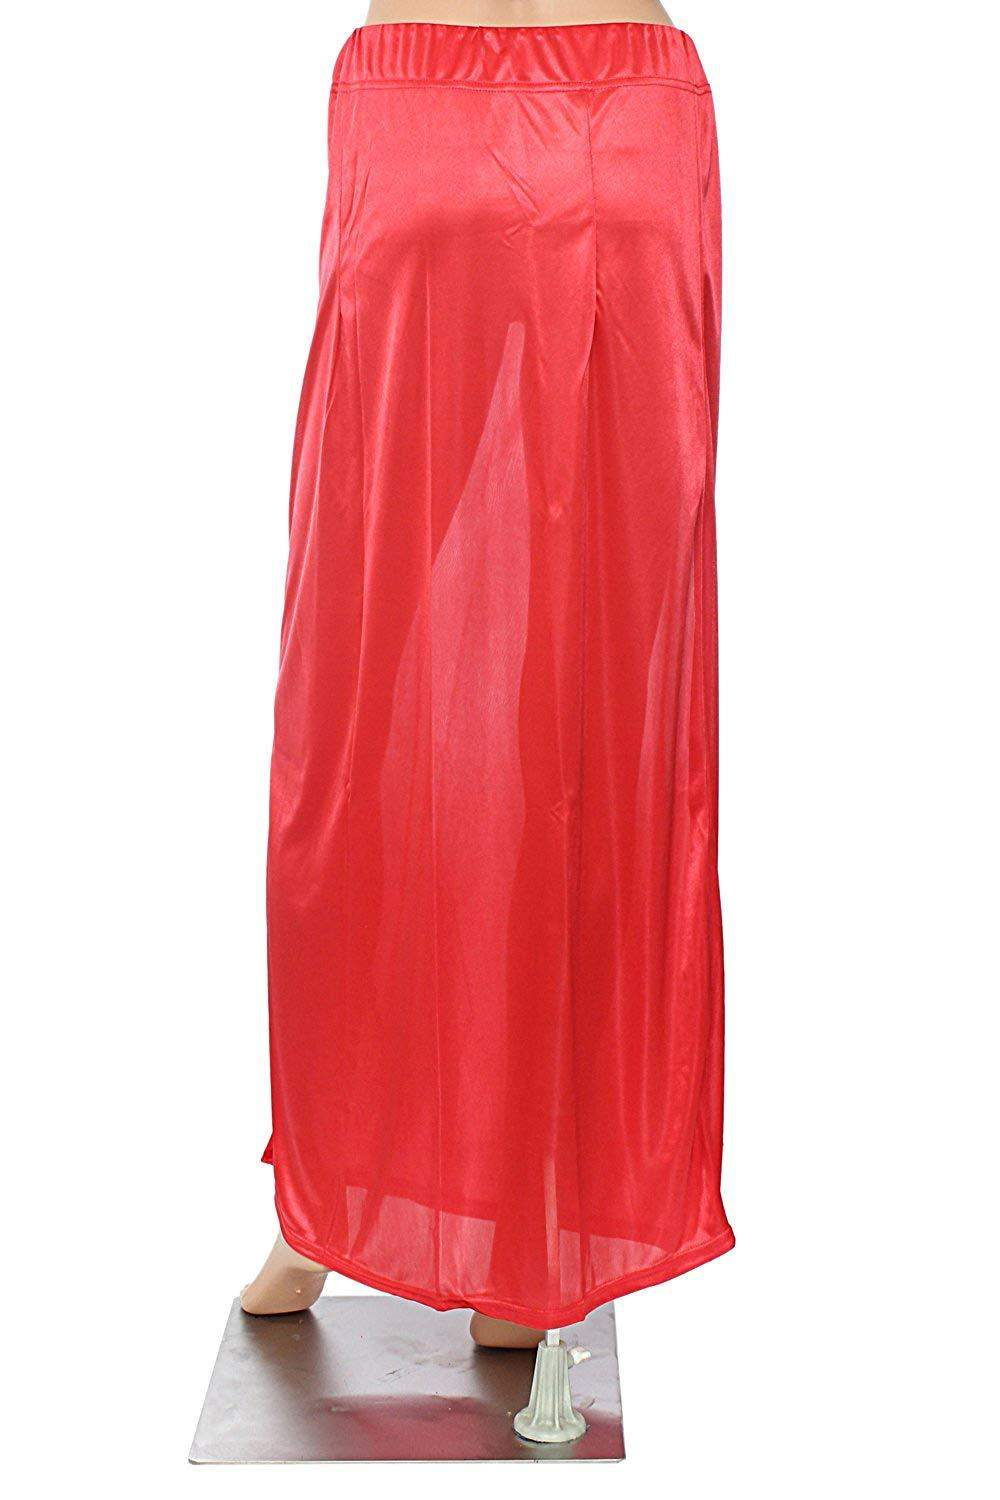 Premium Free Size Satin Women Sari Petticoat InSkirt For Saree (Light Red) - Bagaholics Gift